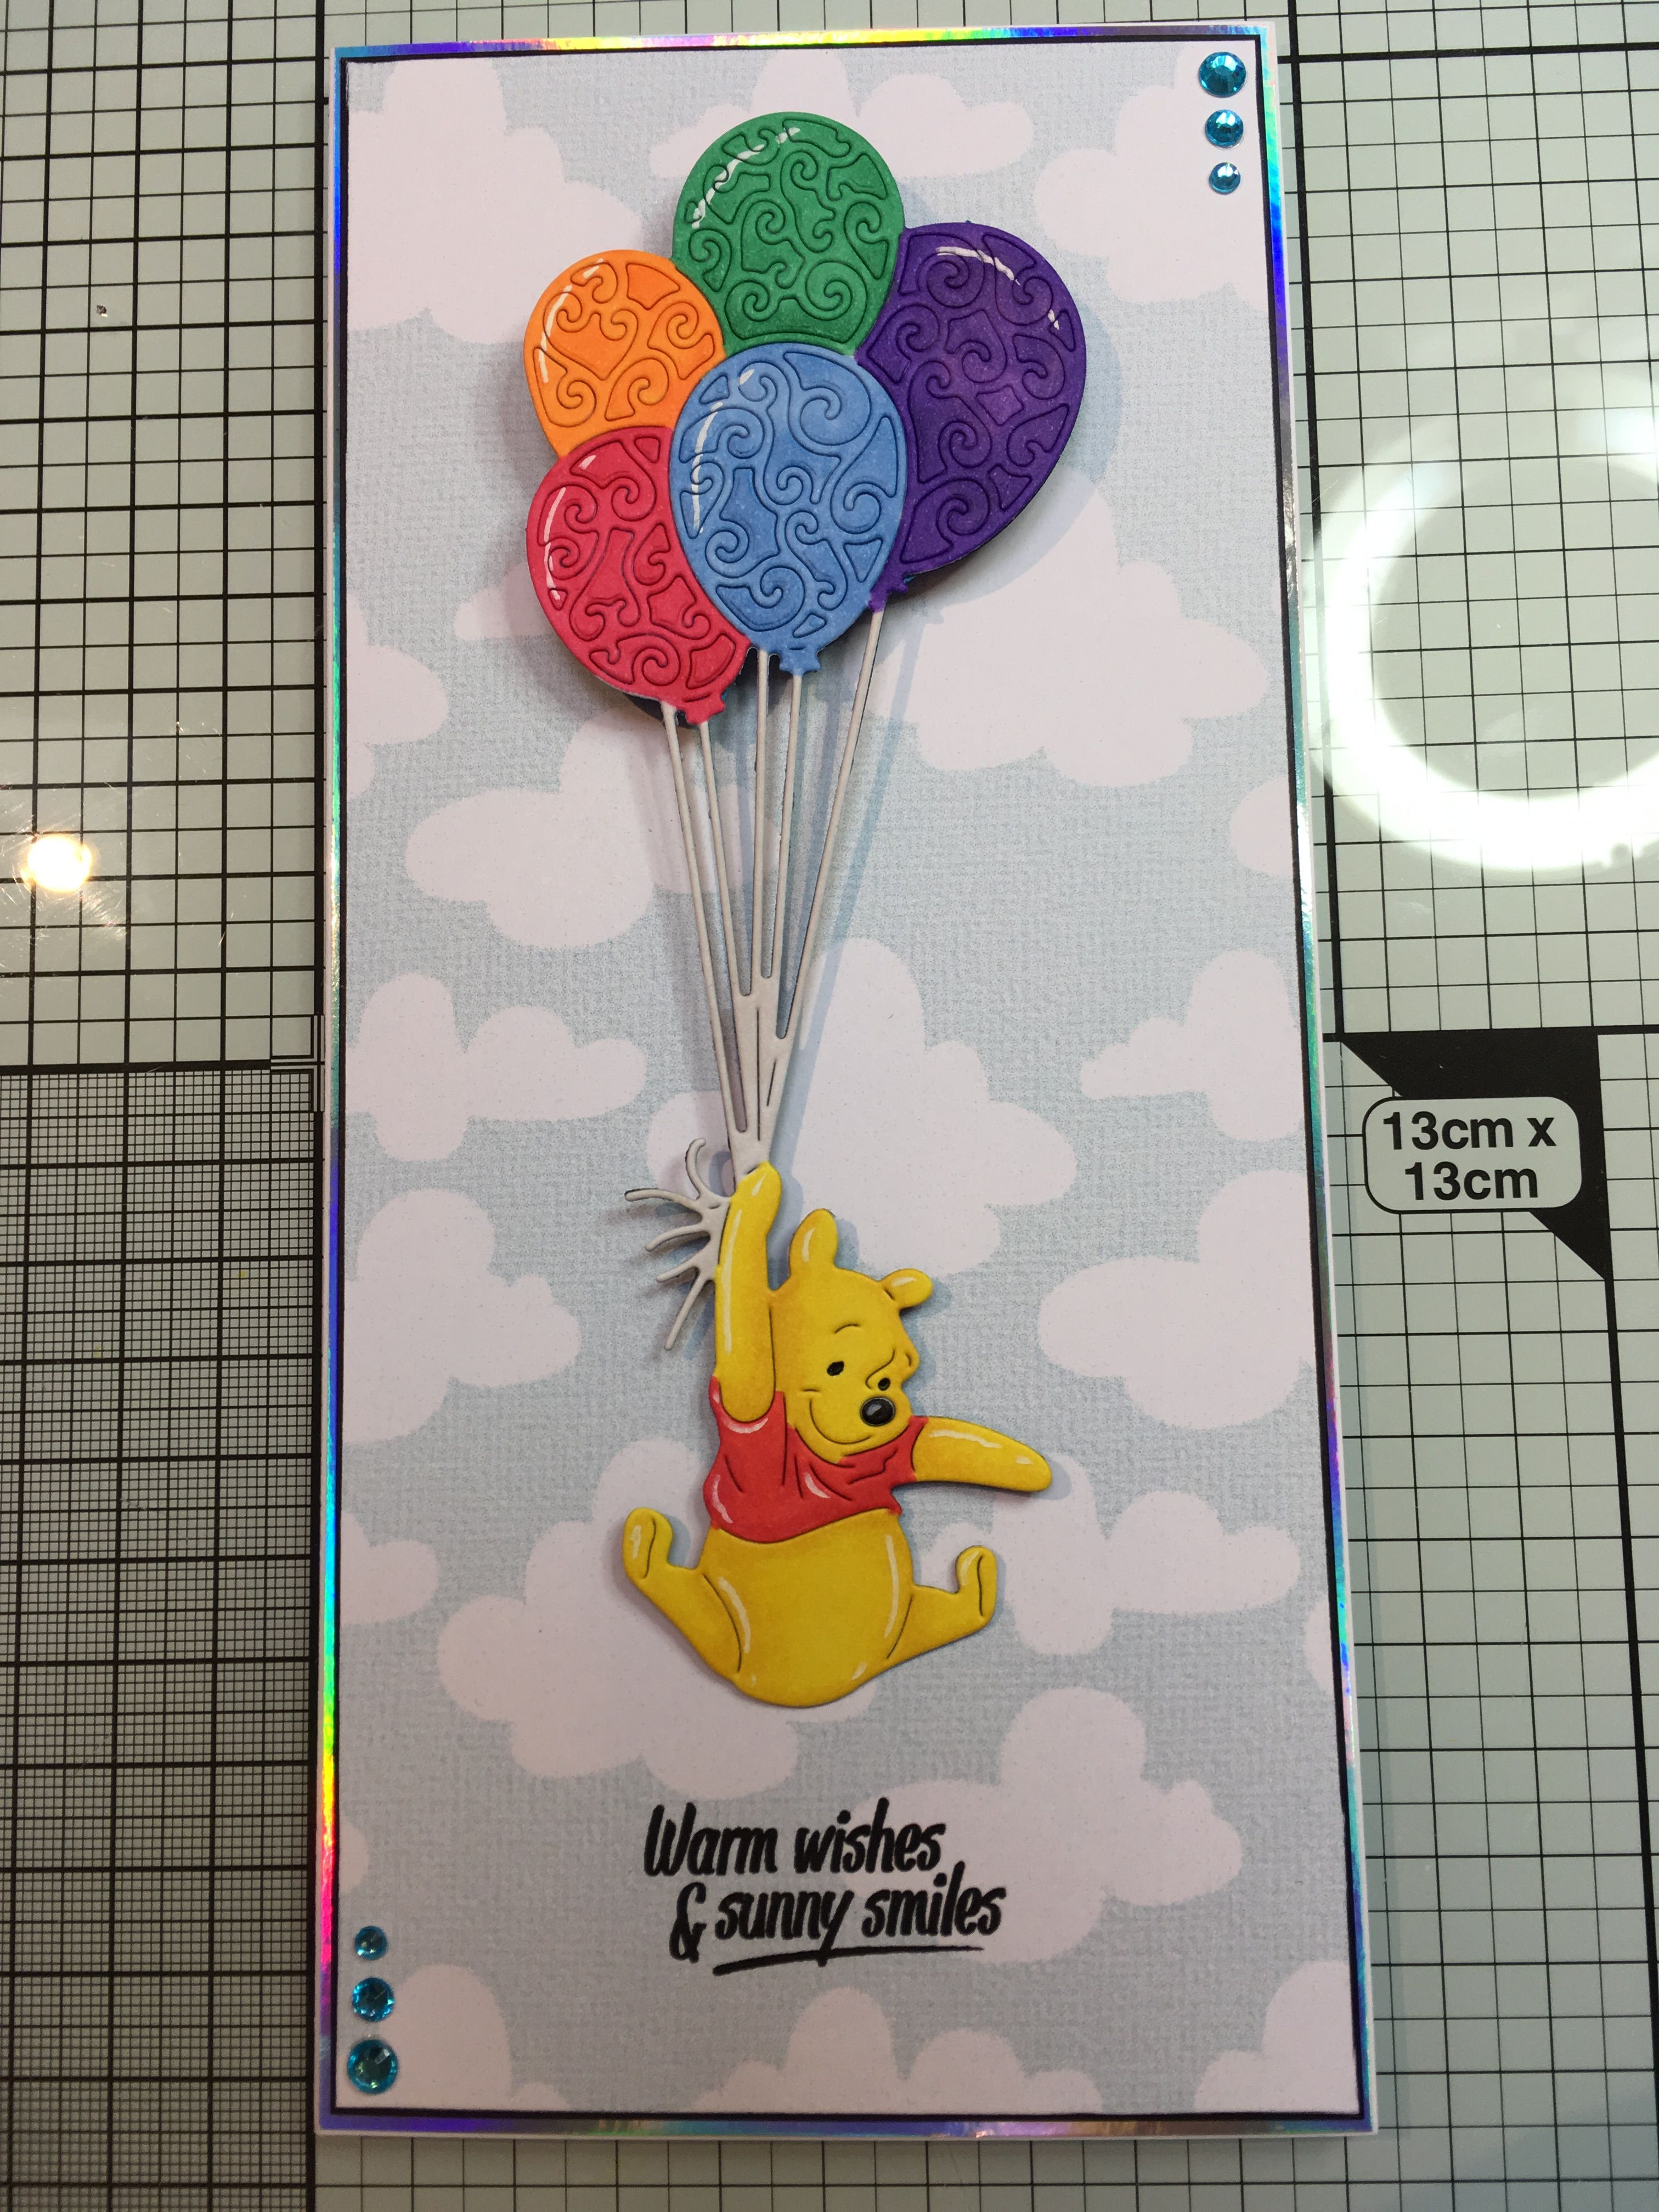 Craftdirect Blog Get Inspired With Some Great Ideas Page 4 Cricut Birthday Cards Disney Birthday Card Birthday Scrapbook Layouts